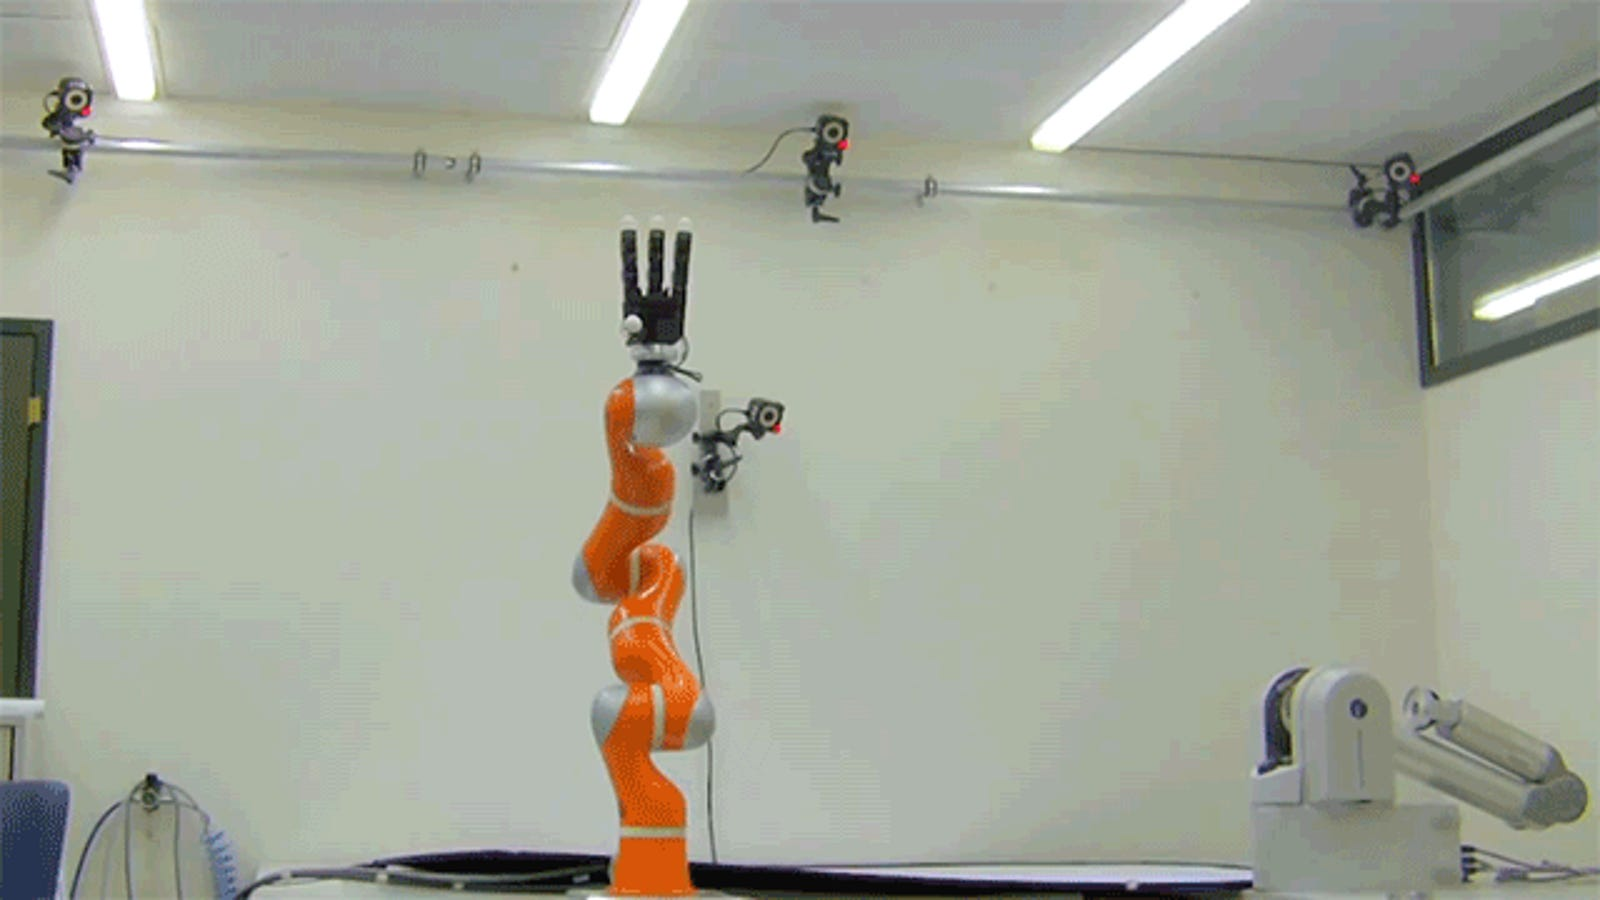 A High-Speed Robot Arm That Snatches Objects Out of Mid-Air